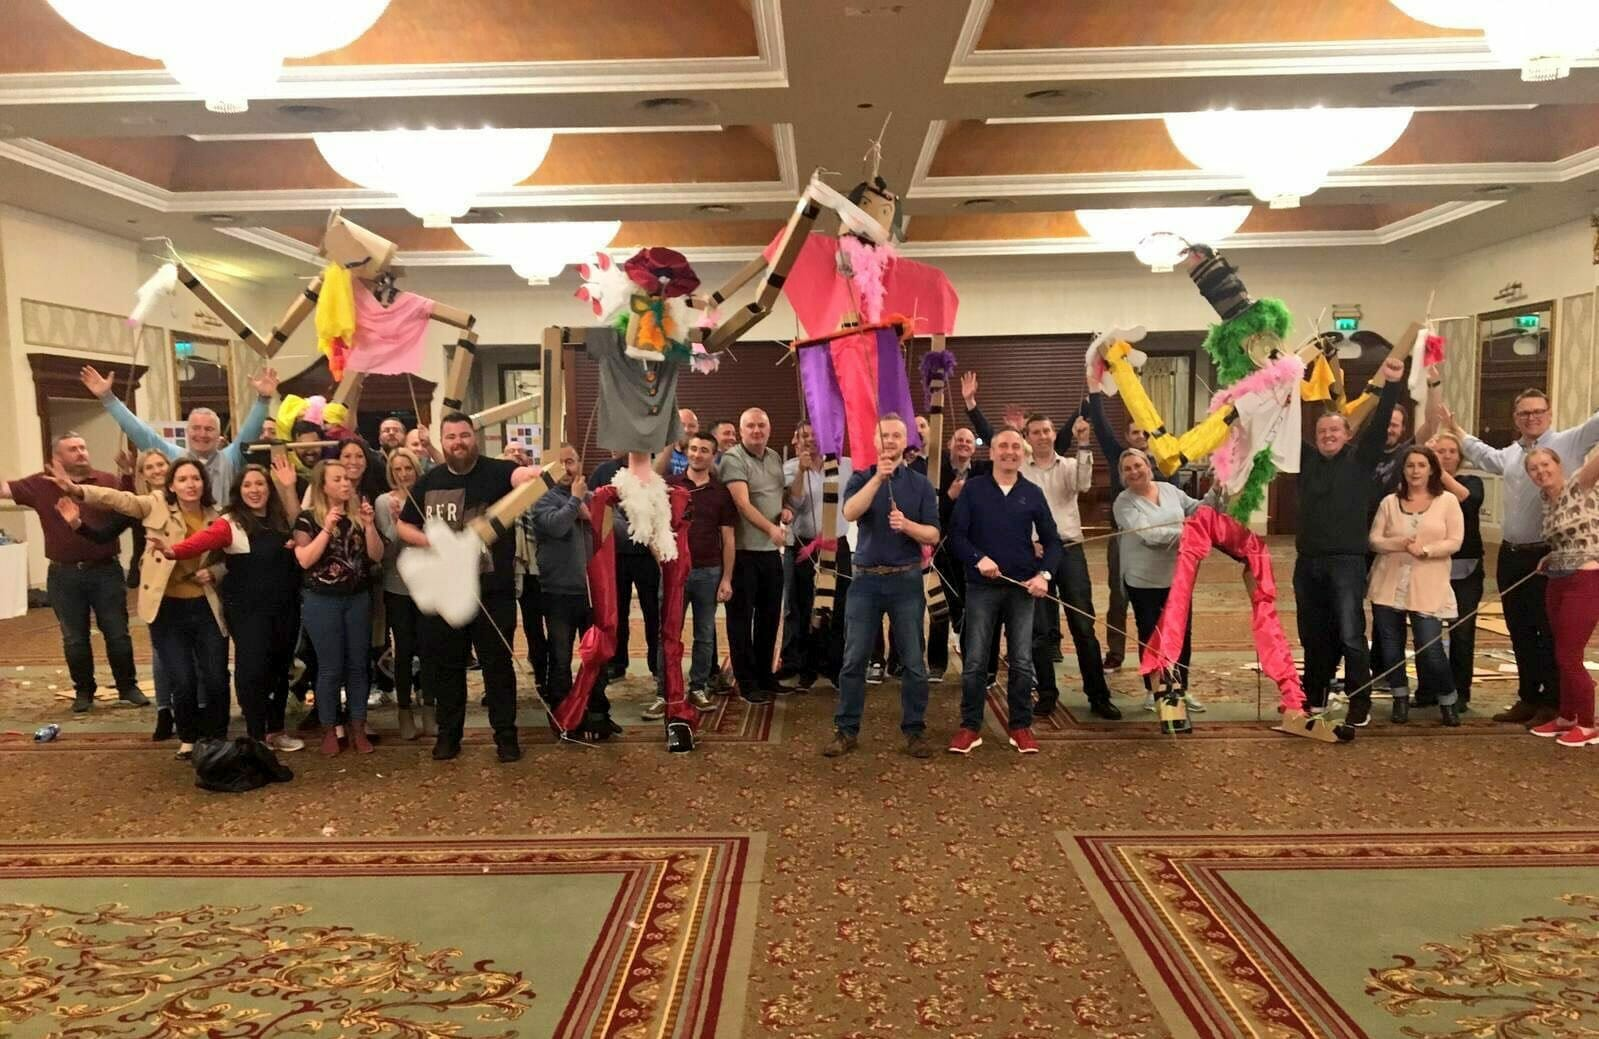 Delegates holding up the giant puppets they created during their teambuilding day with Orangeworks.